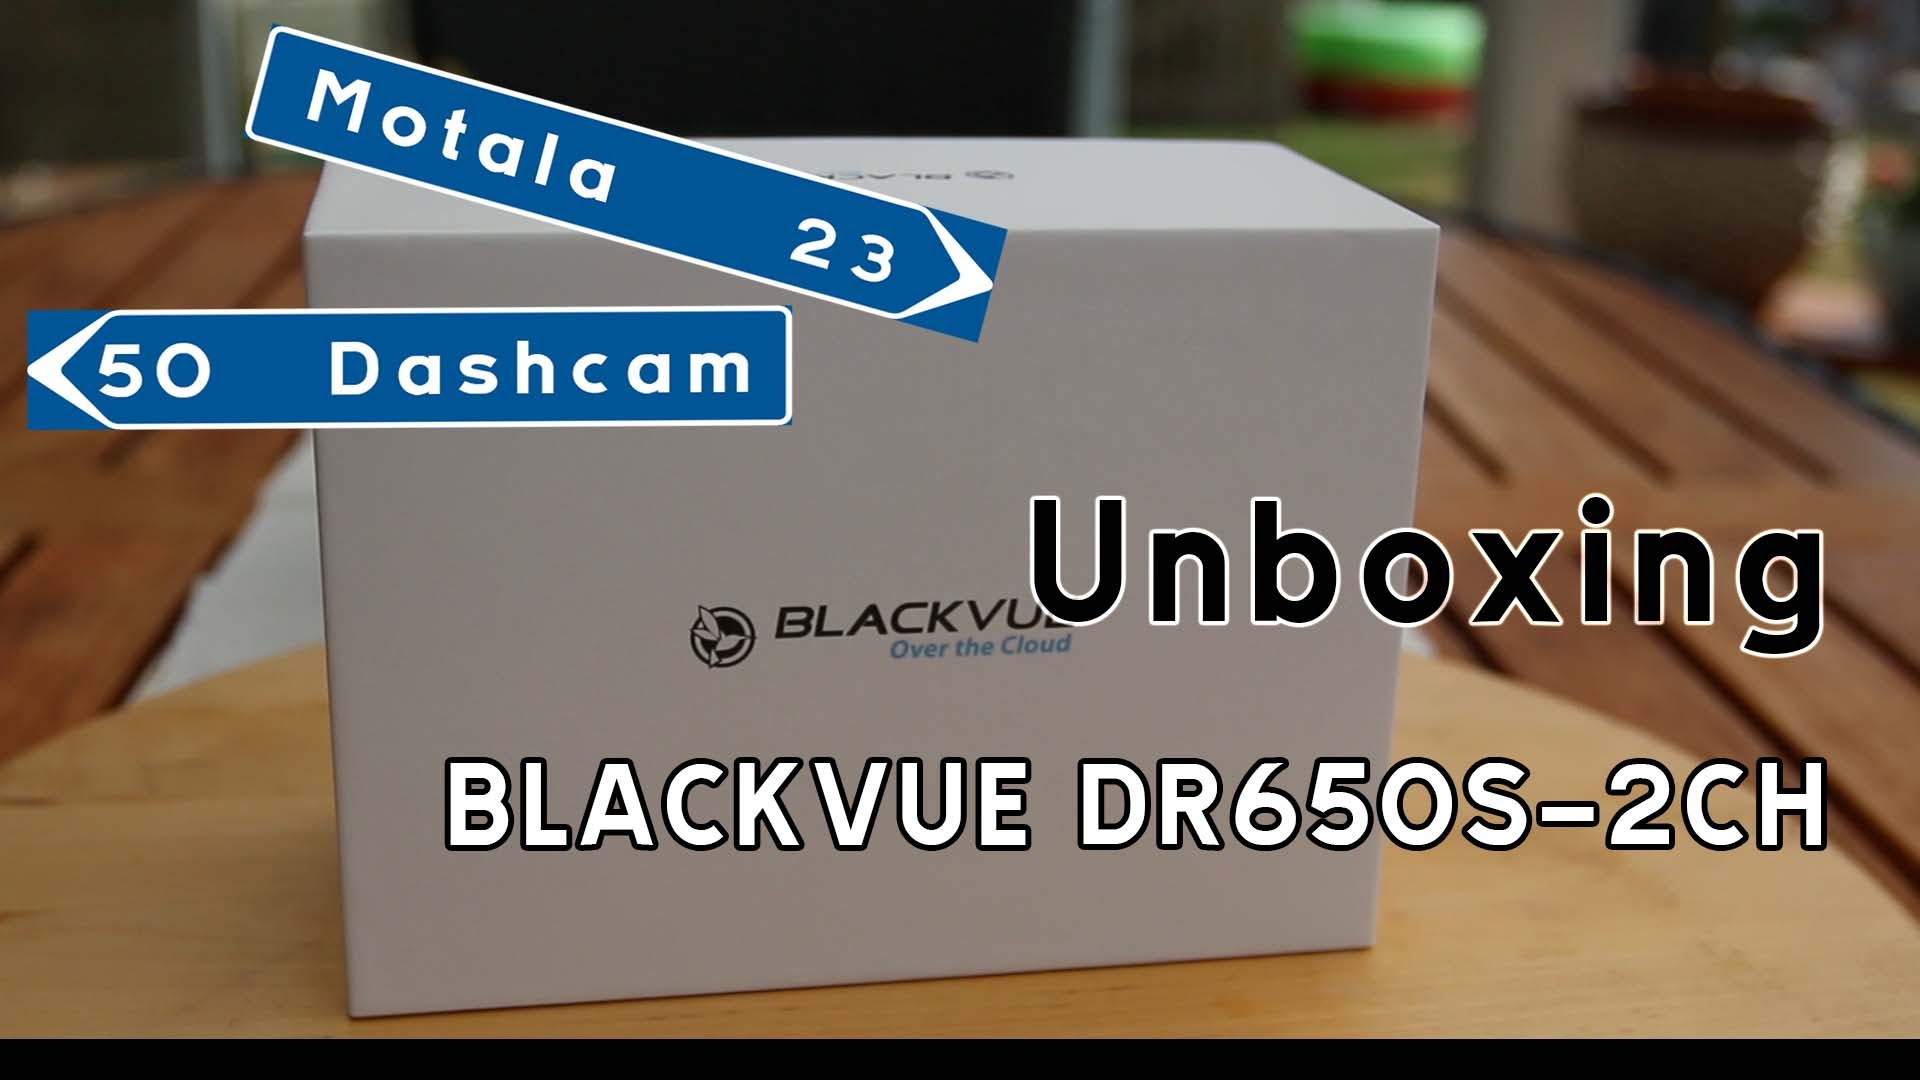 BlackVue DR650S-2CH Unboxing & Unusual Setup @ Motala Dashcam